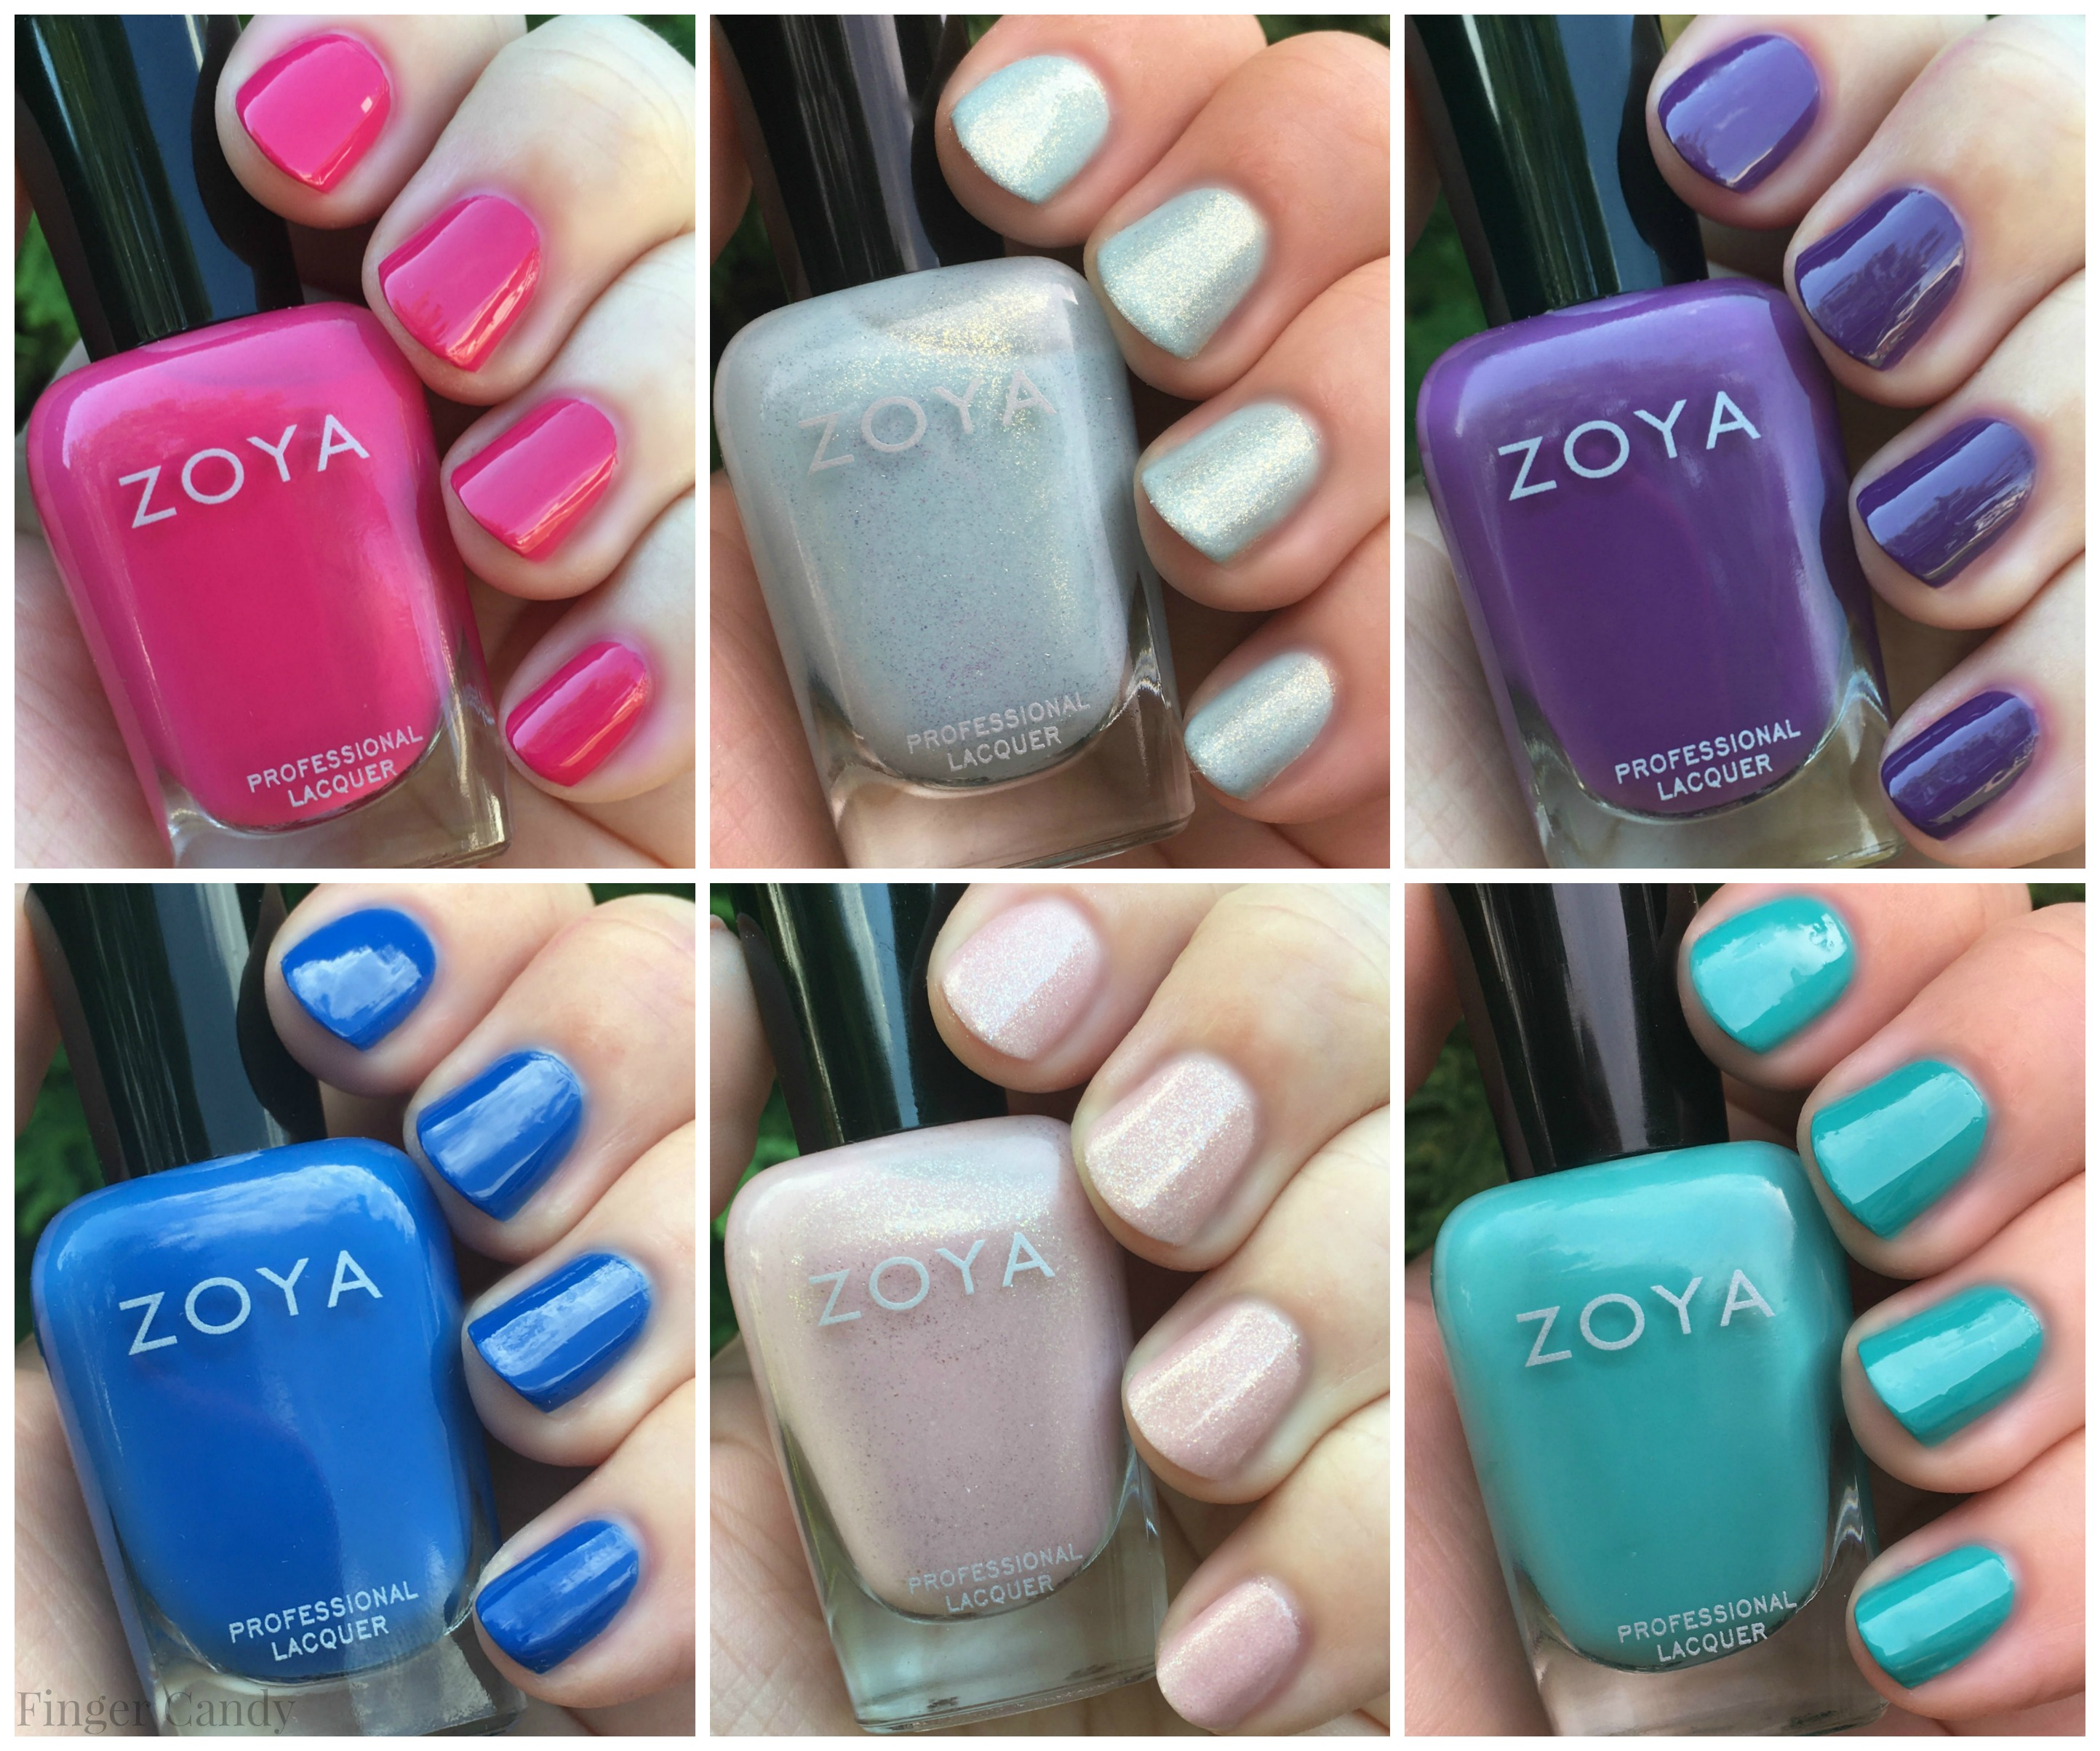 Zoya Collage 1